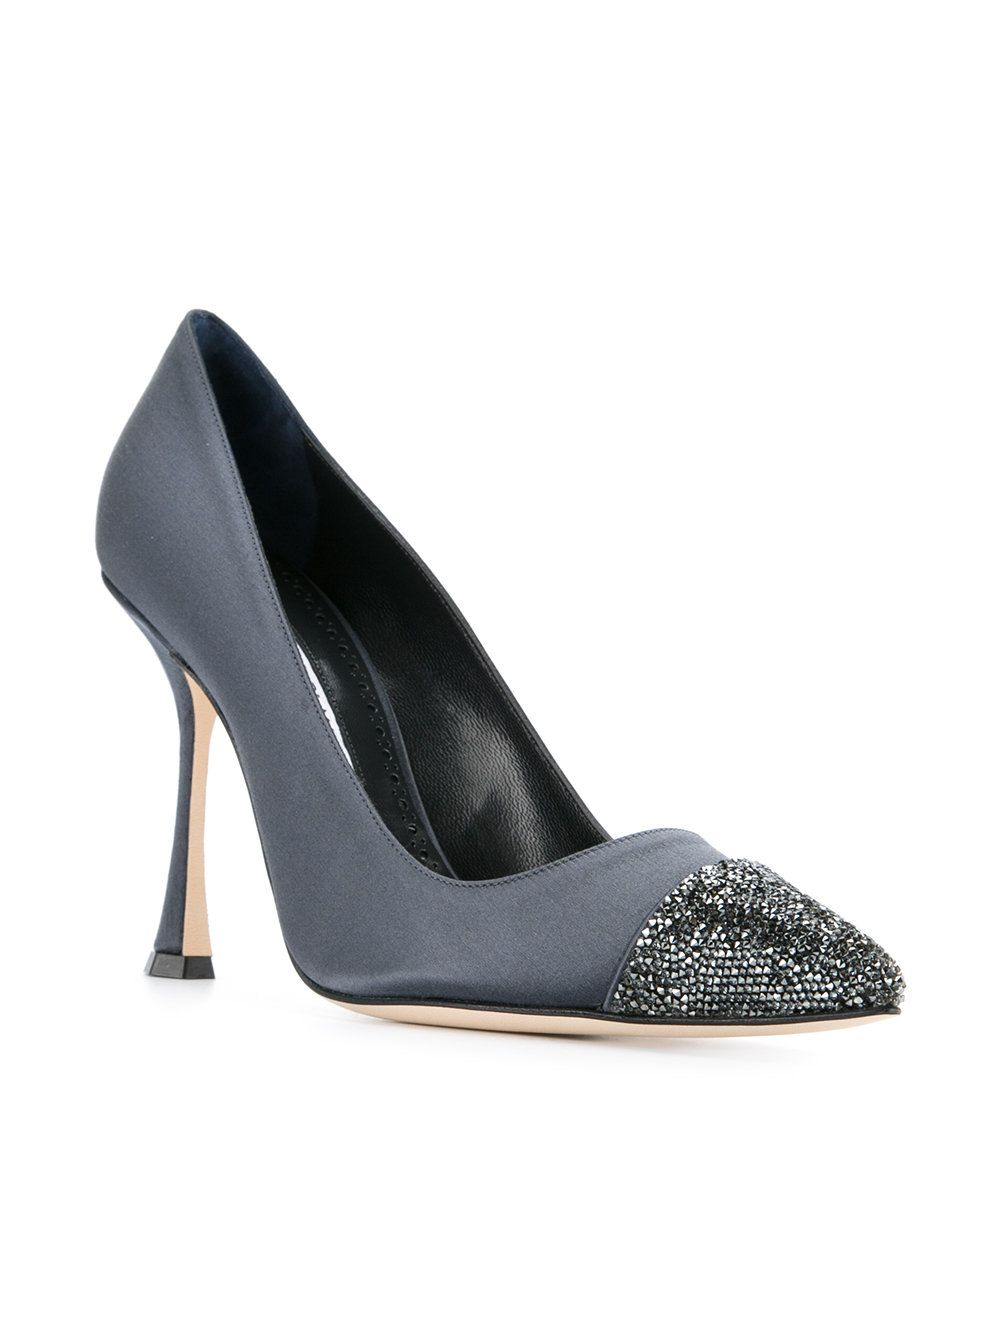 low shipping online outlet clearance Manolo Blahnik Crystalbi Satin Pumps discount collections ZS2GkLqB